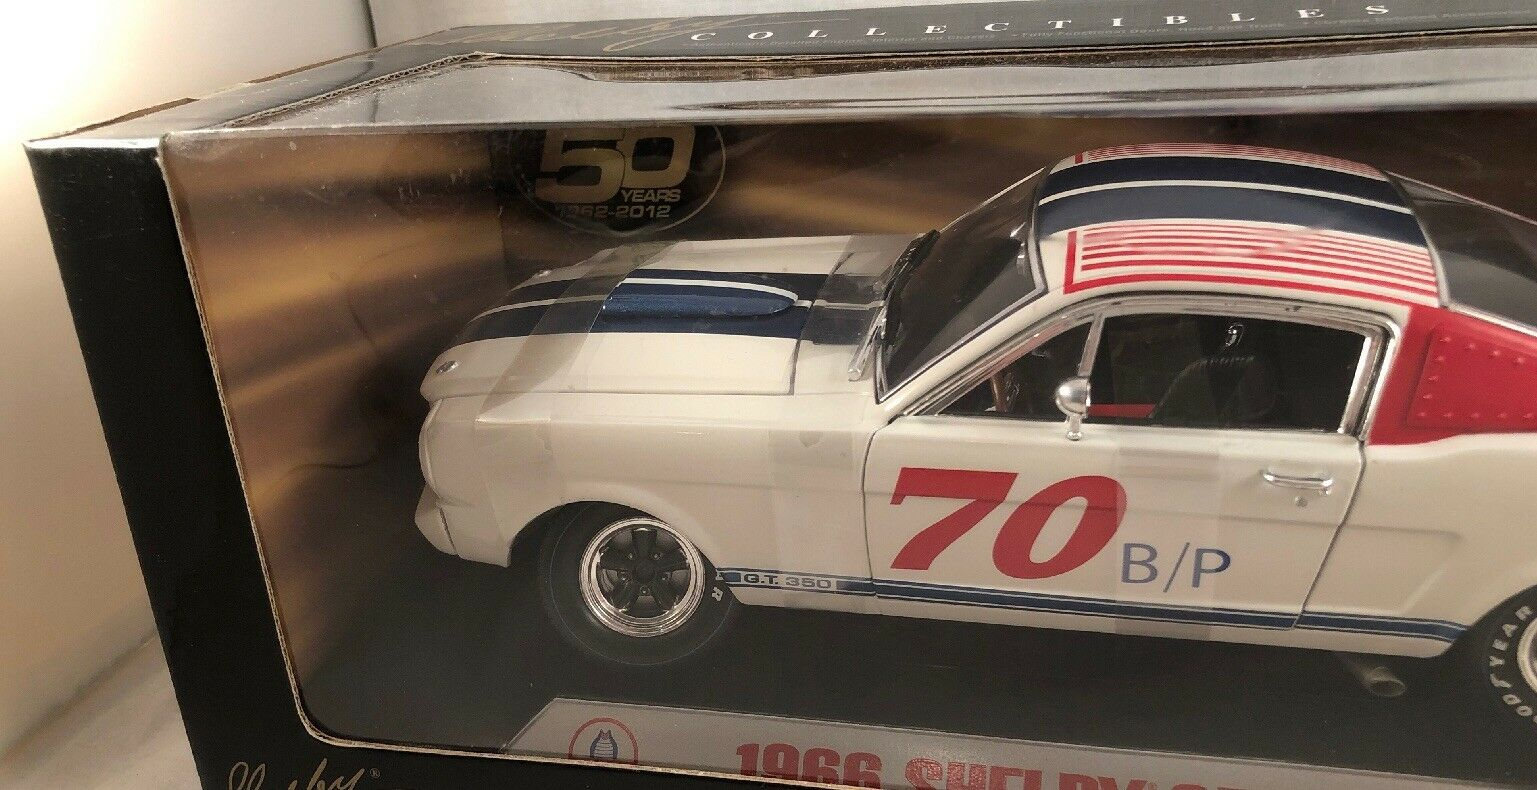 SHELBY SHELBY SHELBY COLLECTIBLES 1 18 1966 SHELBY GT 350R B P WHITE E VERY RARE a533a6